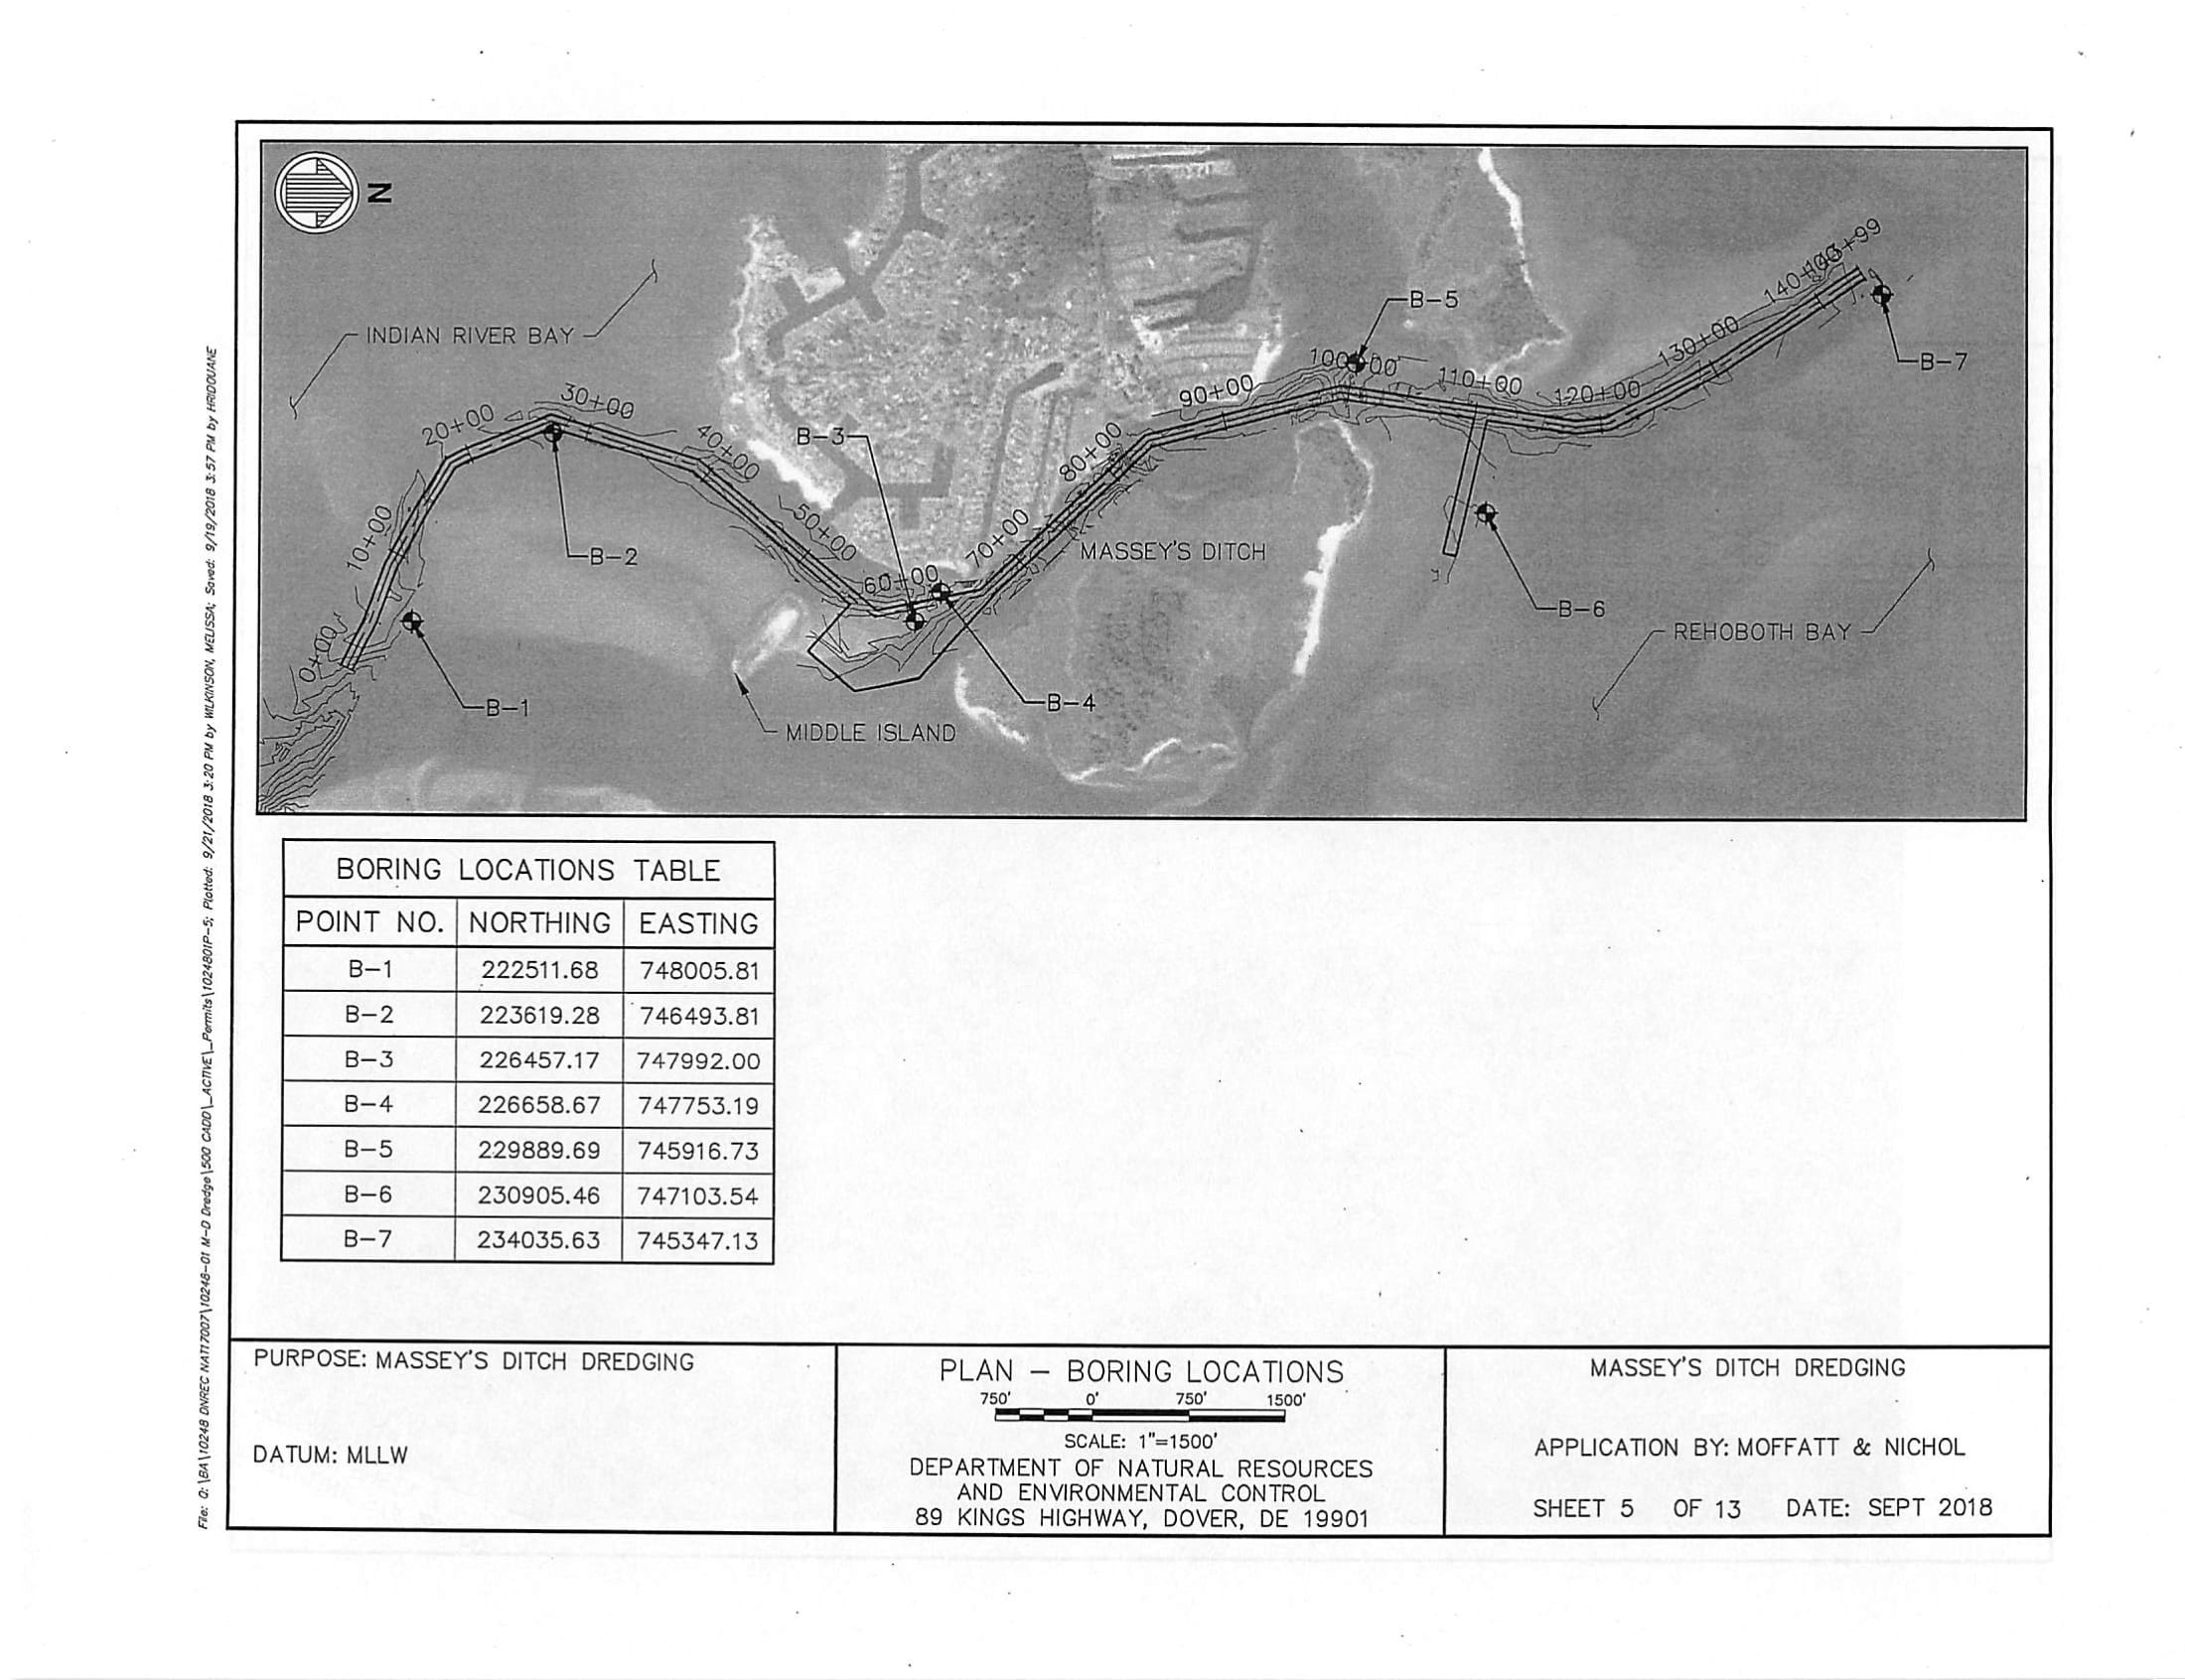 Army corp of engineers, masseys ditch, delaware, long neck, pot nets bayside, seaside, inland bays, indian river bay, rehoboth bay, lynch thicket island, big ditch, bakers channel, middle island, ey's Ditch Federal Navigation Channel from Rehoboth Bay to the Indian River Bay, masseys landing, the peninsula, long neck road, stat boat ramp, bay channel, dredging project,